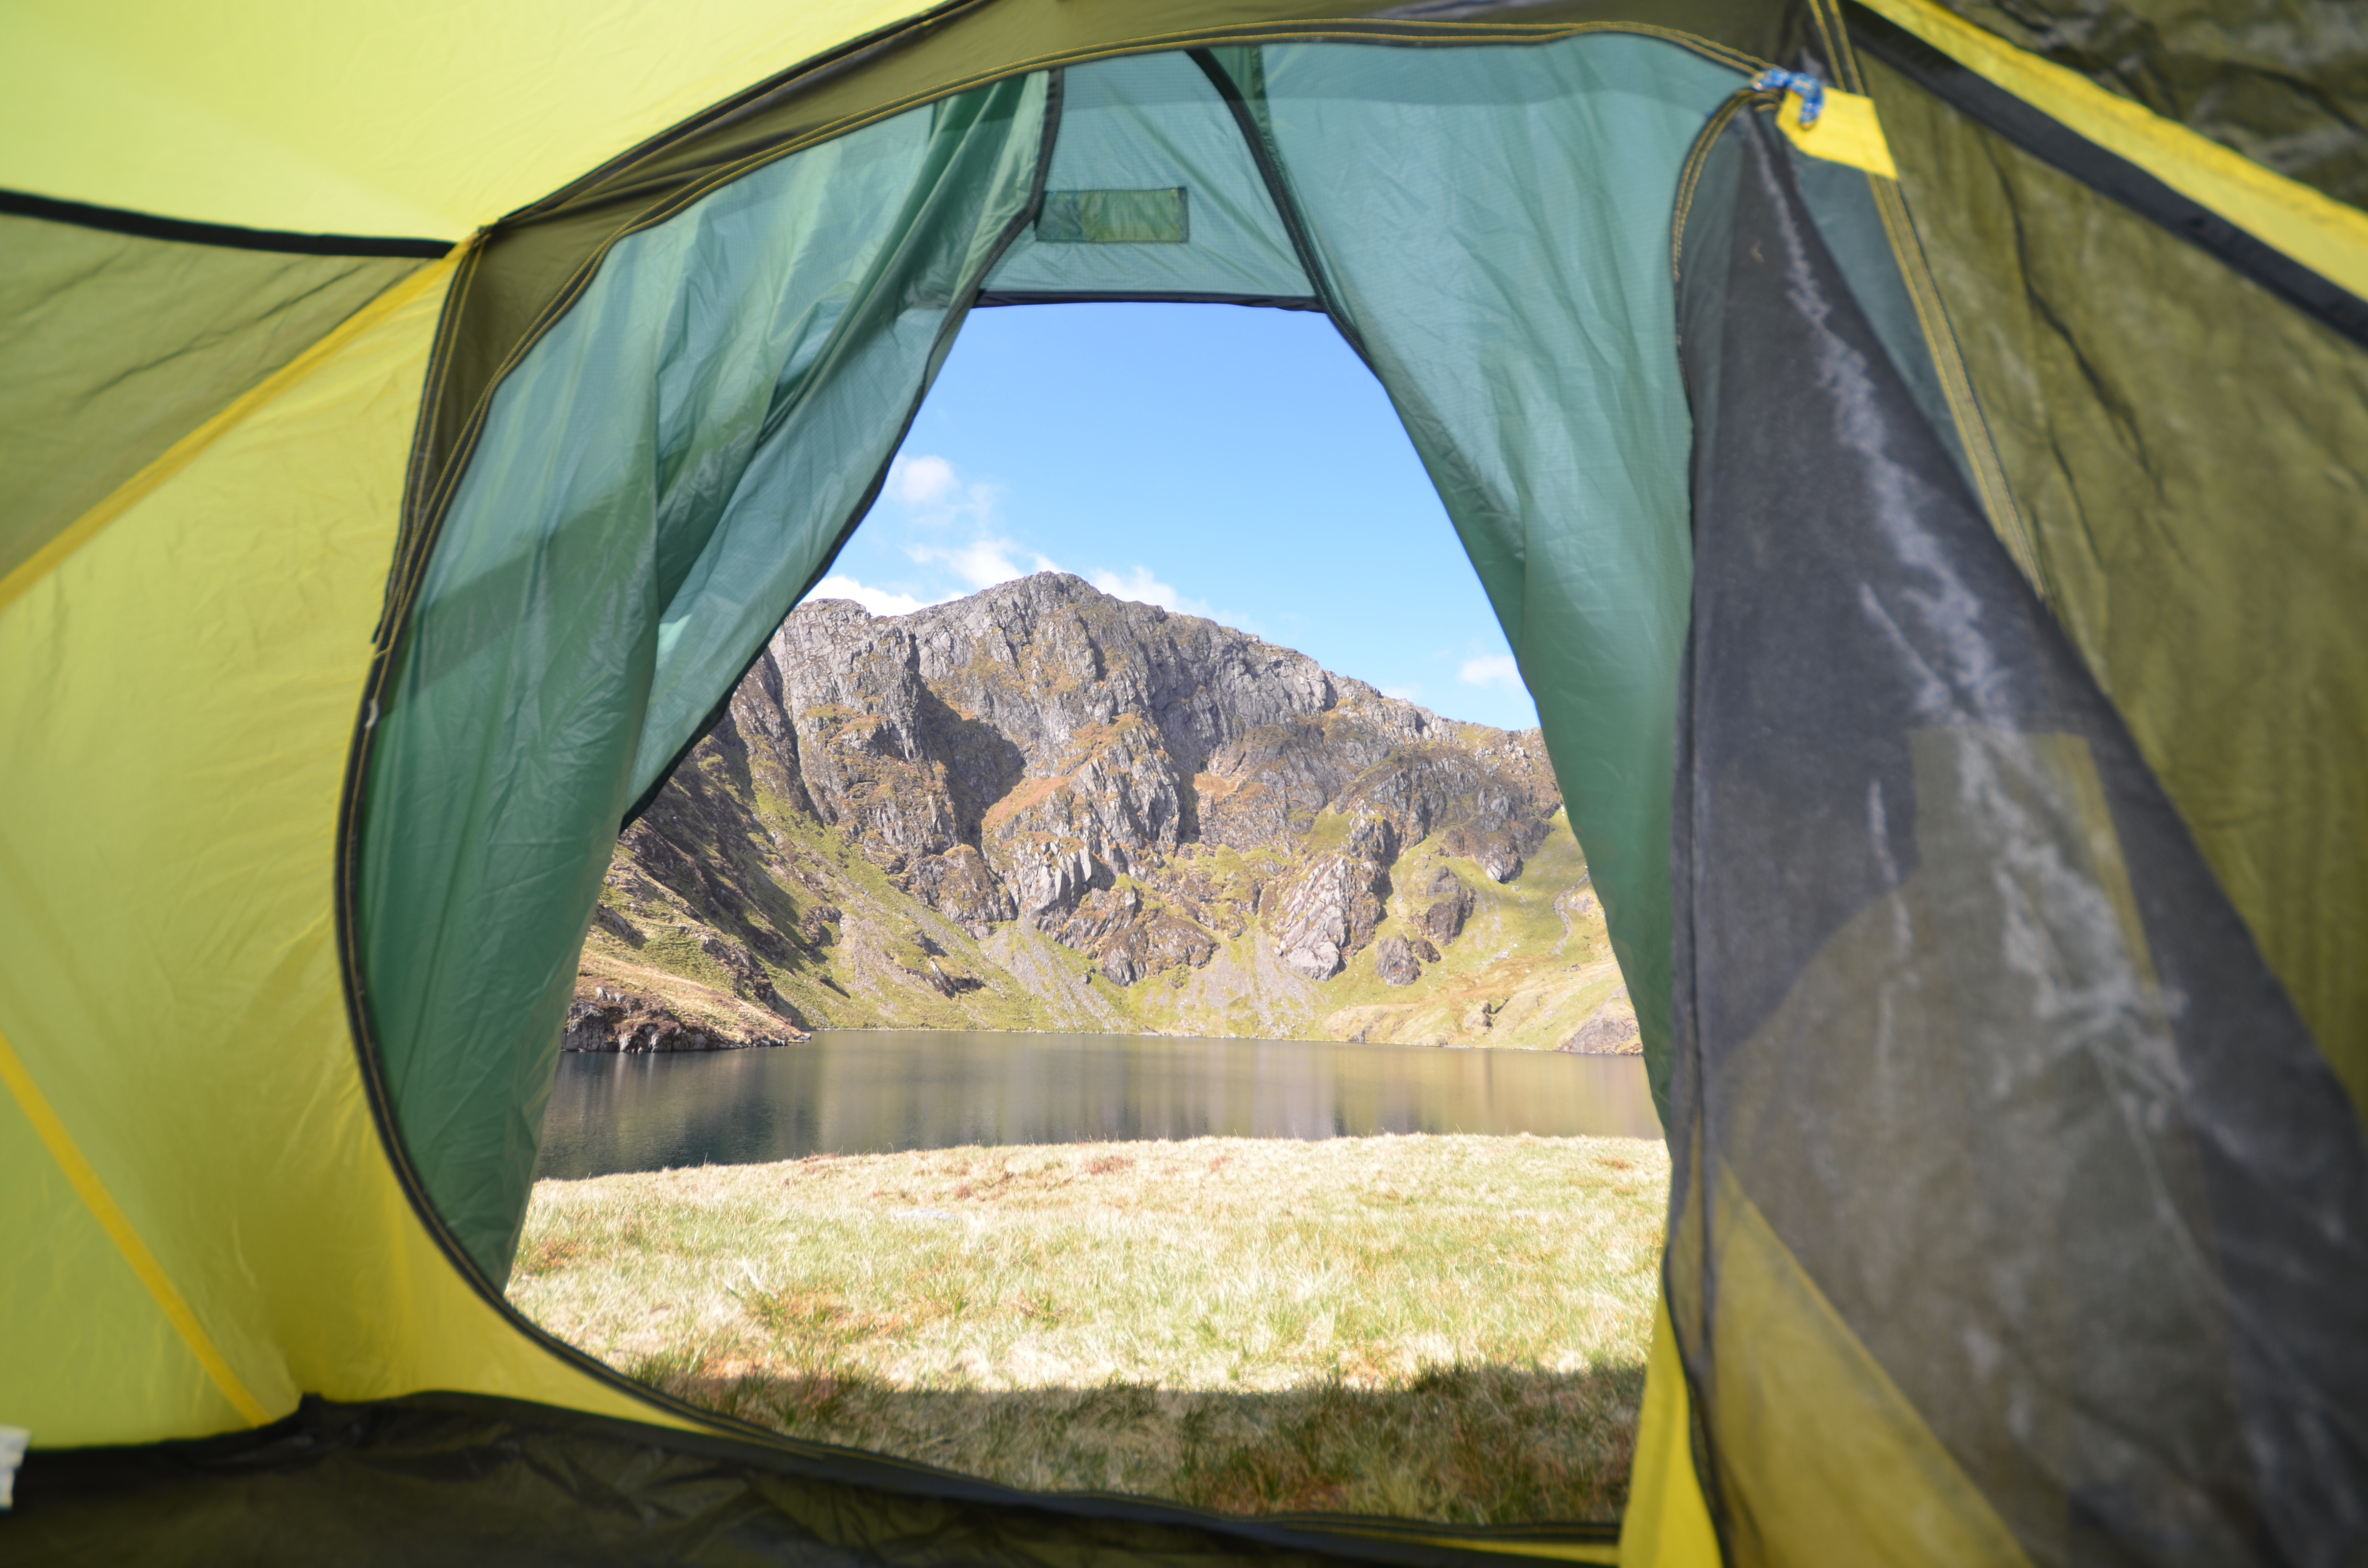 Wild Camping: The basics